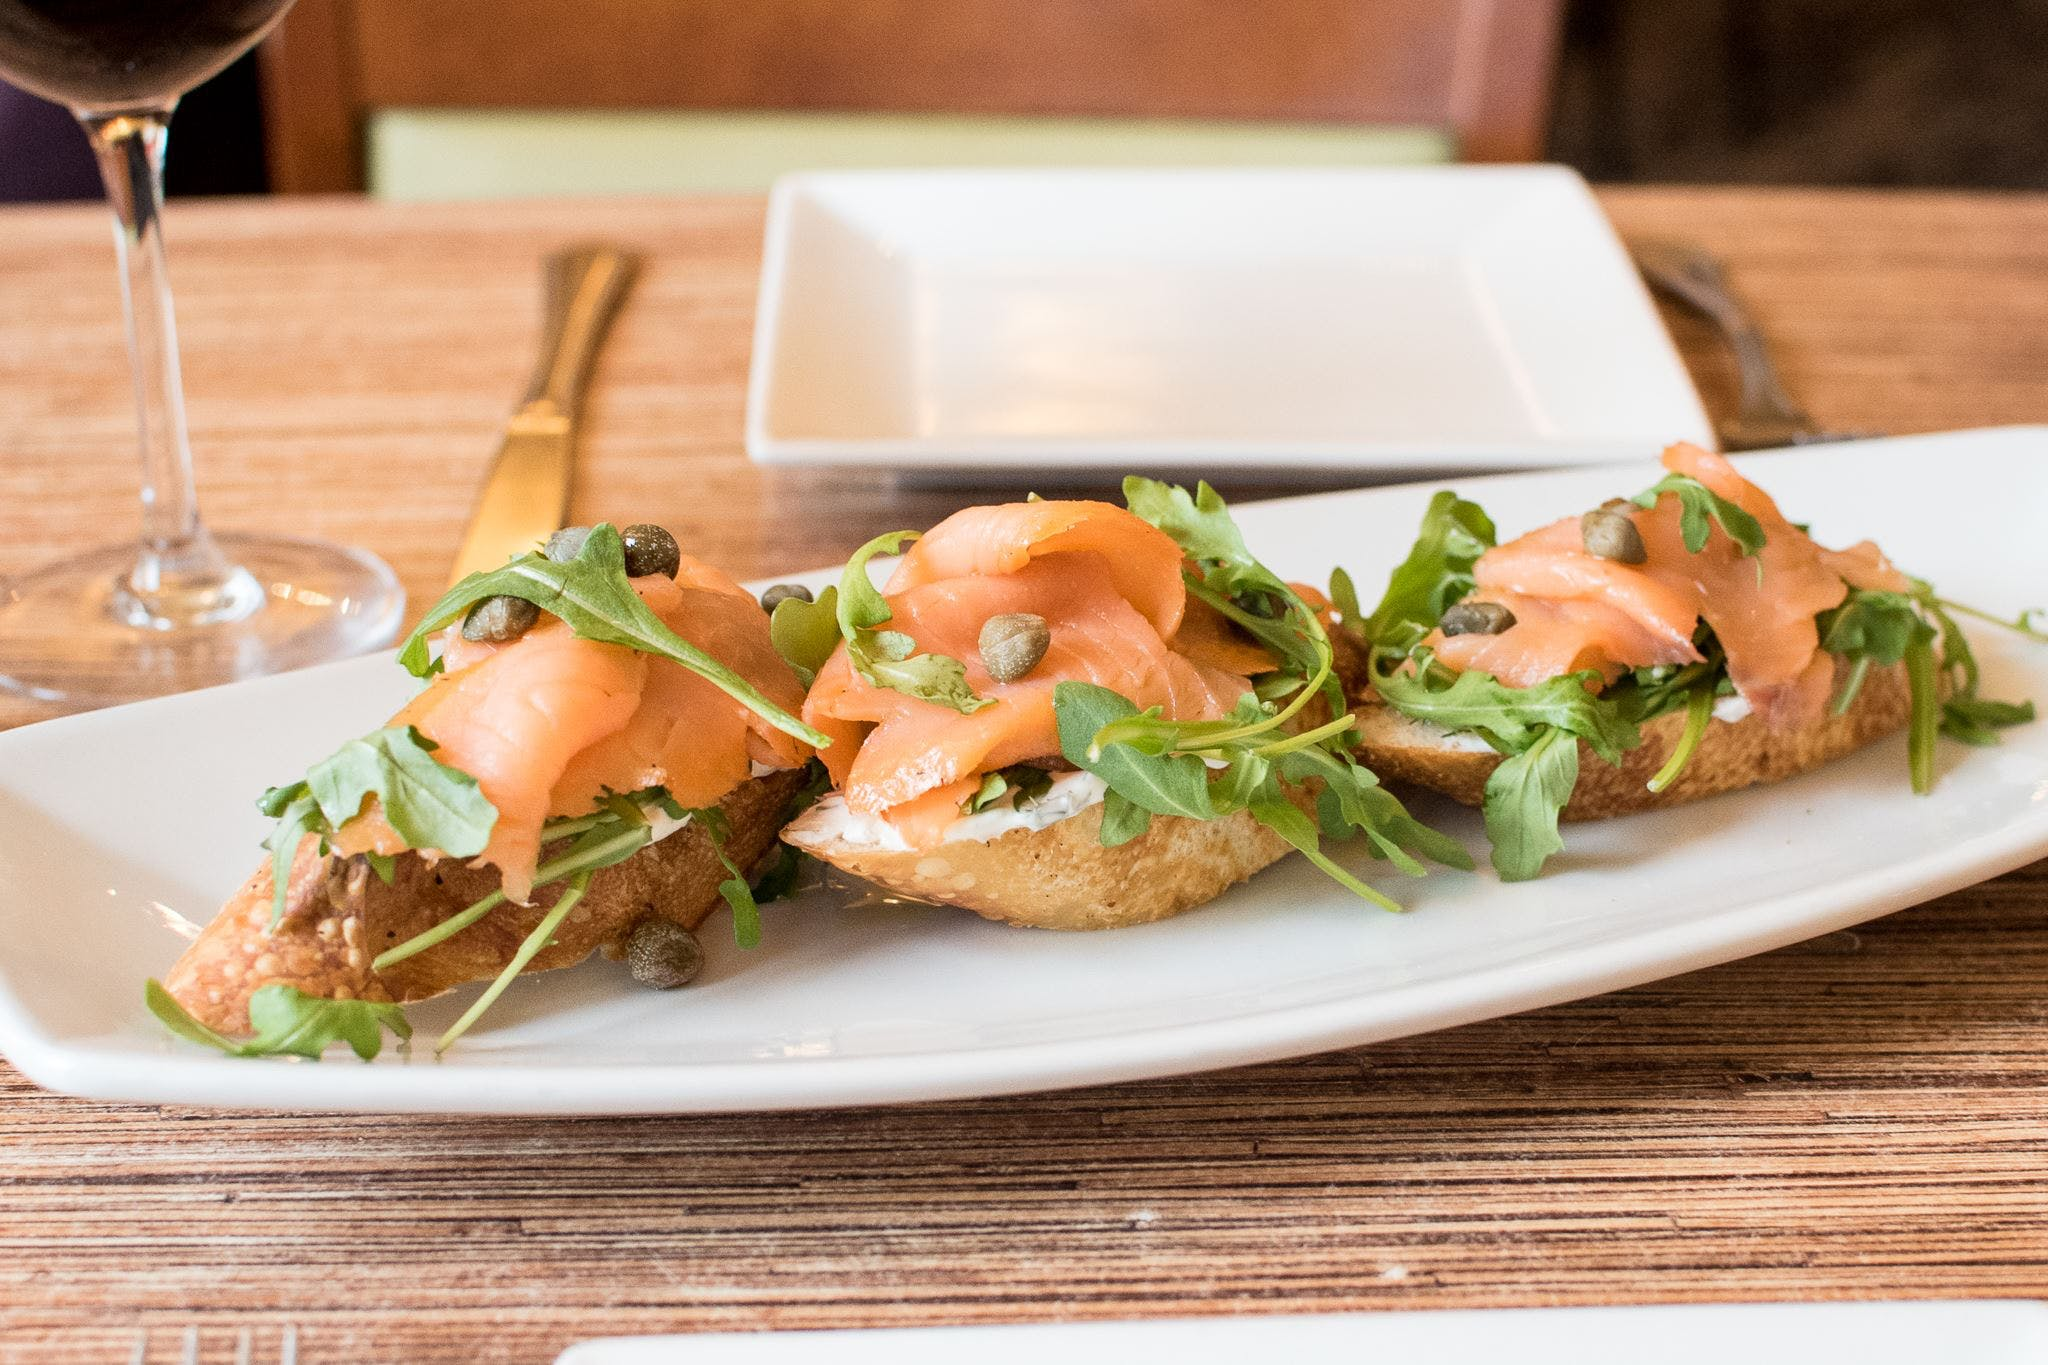 Smoked Salmon Bruschetta from Villa Dolce in Middleton, WI